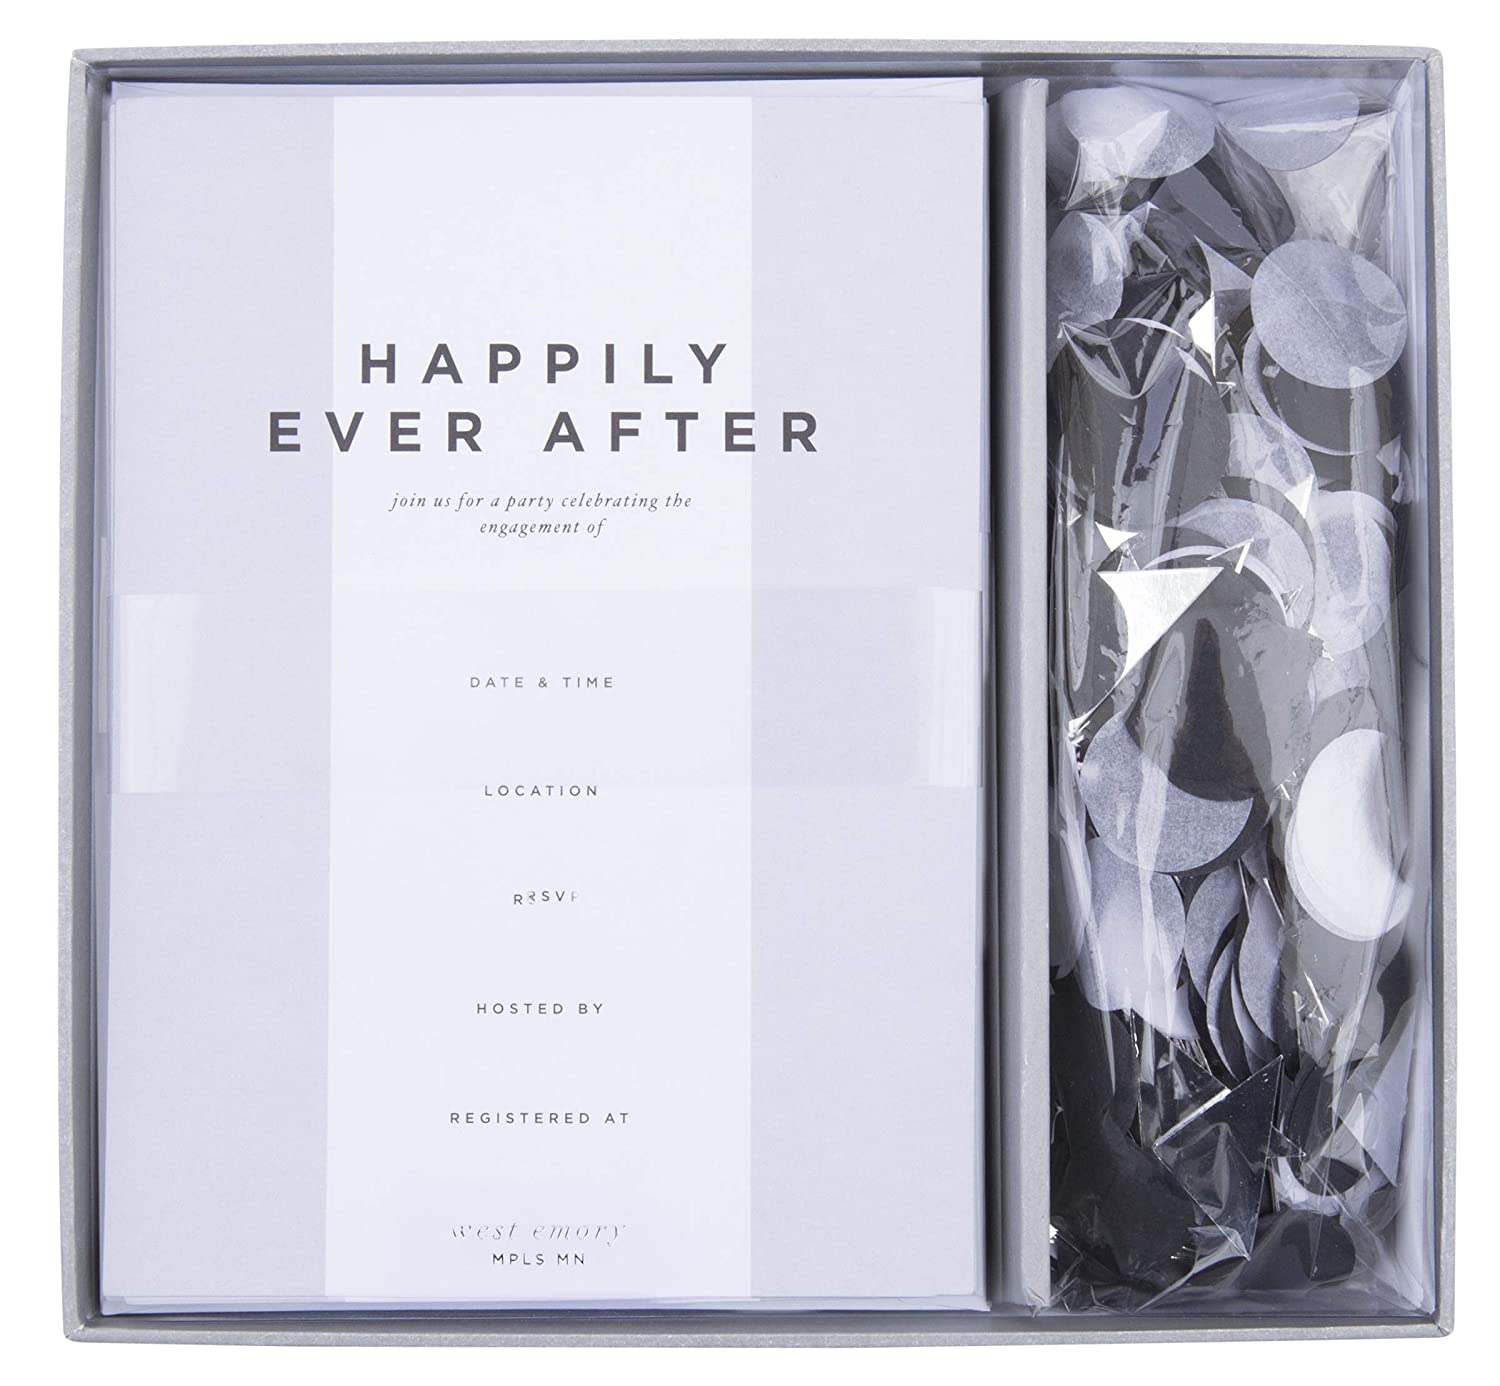 West Emory Emote Collection Happily Ever After Engagement Party Invitation Kit with Confetti 12 5 x 7 Cards and Envelopes